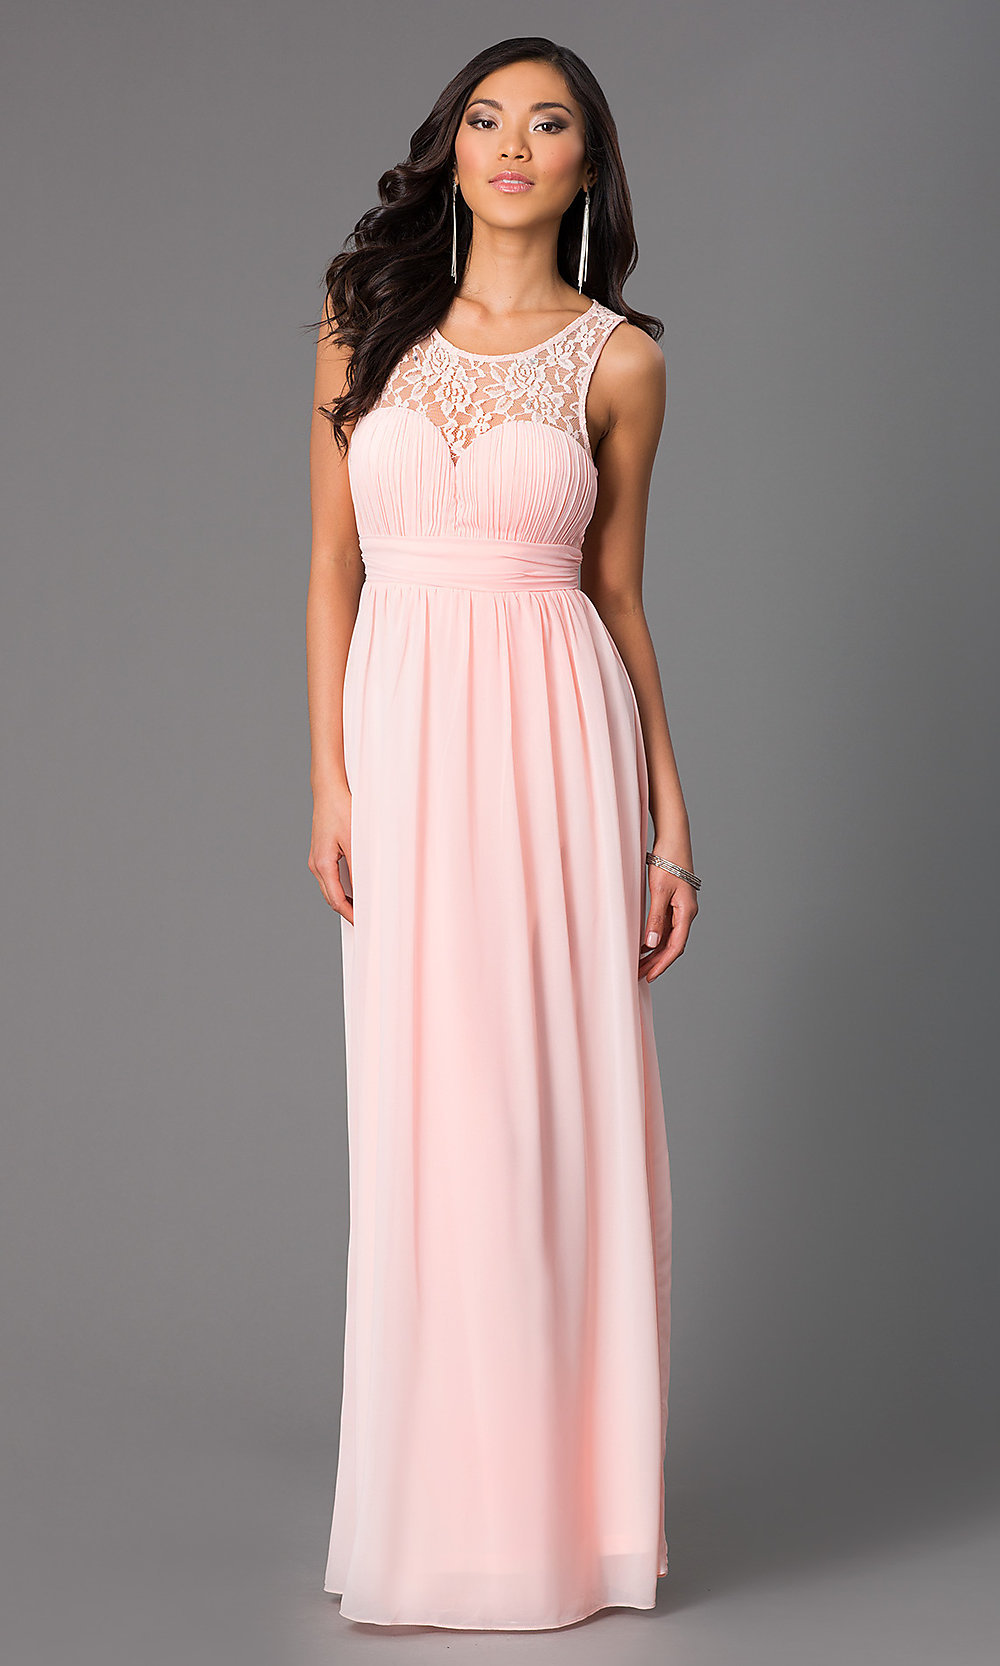 Sleeveless Floor-Length Chiffon Prom Dress-PromGirl